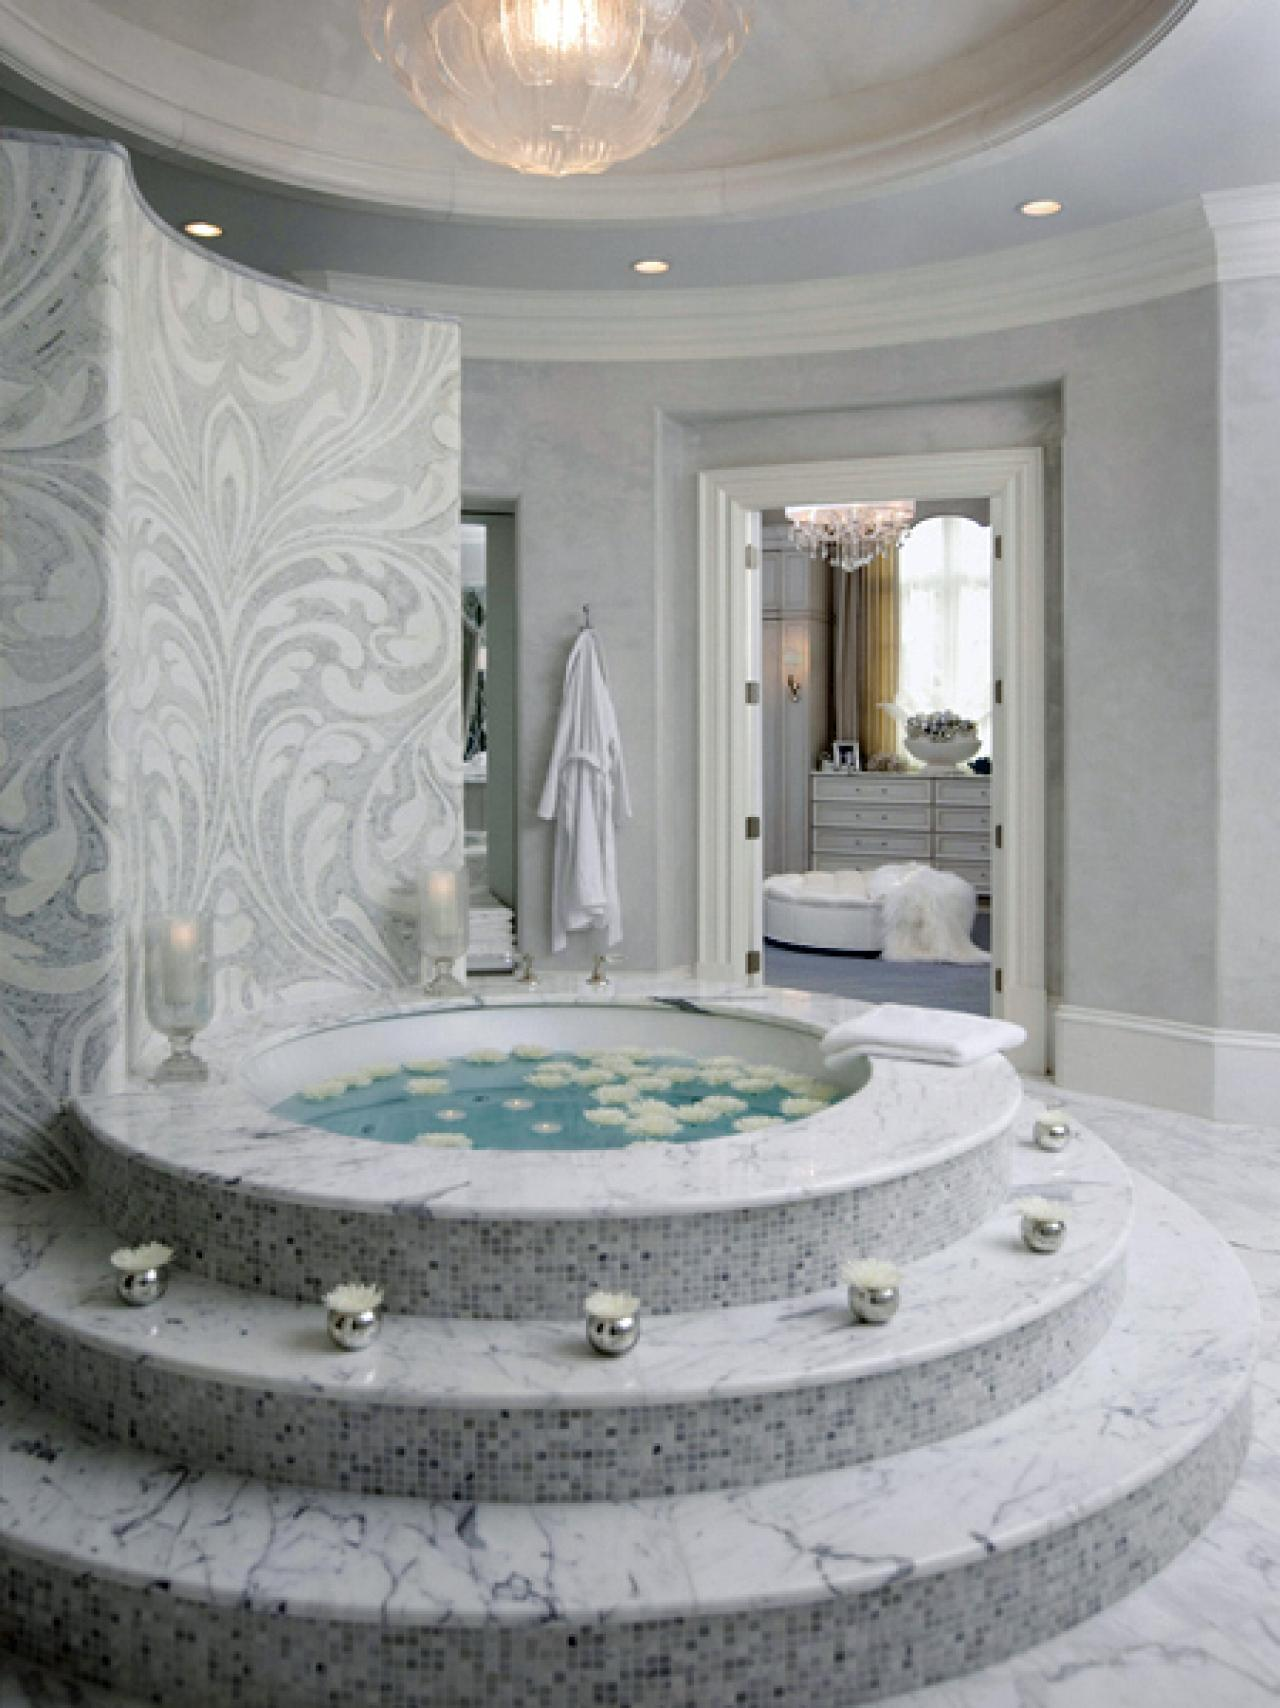 Two person bathtubs pictures ideas tips from hgtv for Bathroom ideas with tub